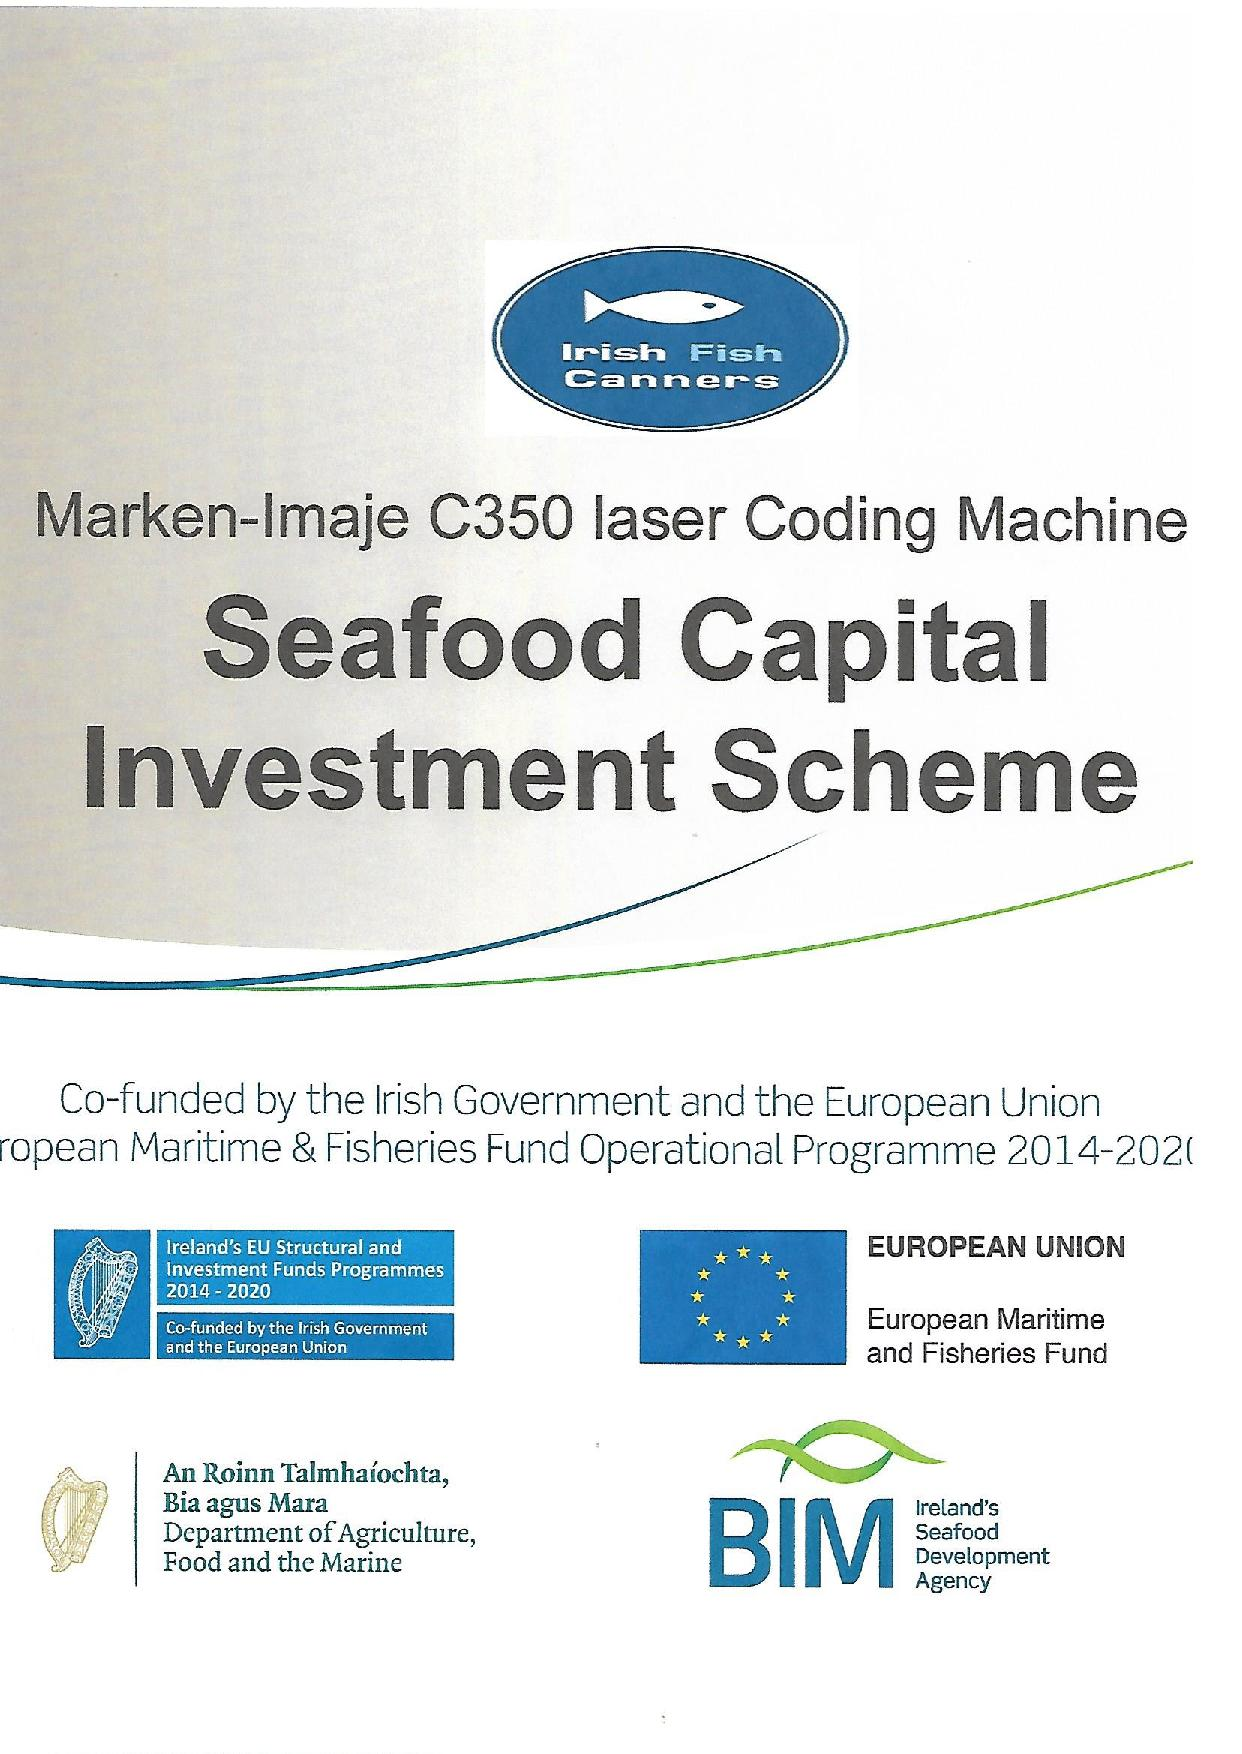 BIM, European Maritime and Fisheries Fund